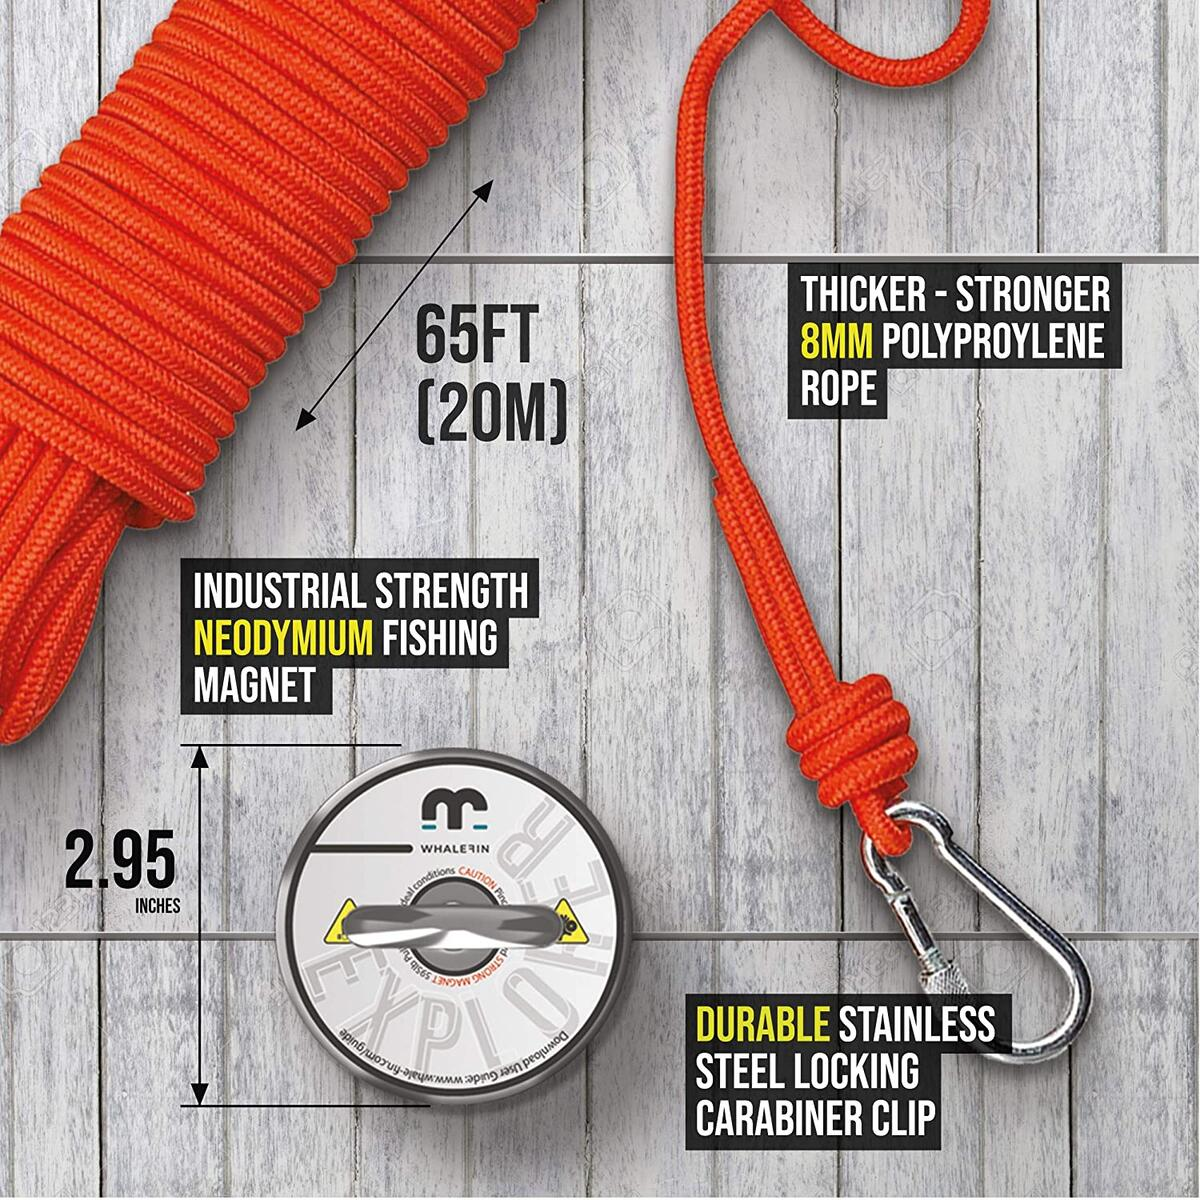 Whalefin Fishing Magnet Kit for Explorers - 595 lb Powerful Fishing Magnet with Rope - The Complete Magnetic Fishing Kit for Lakes, Rivers, Deep Sea - User Guide